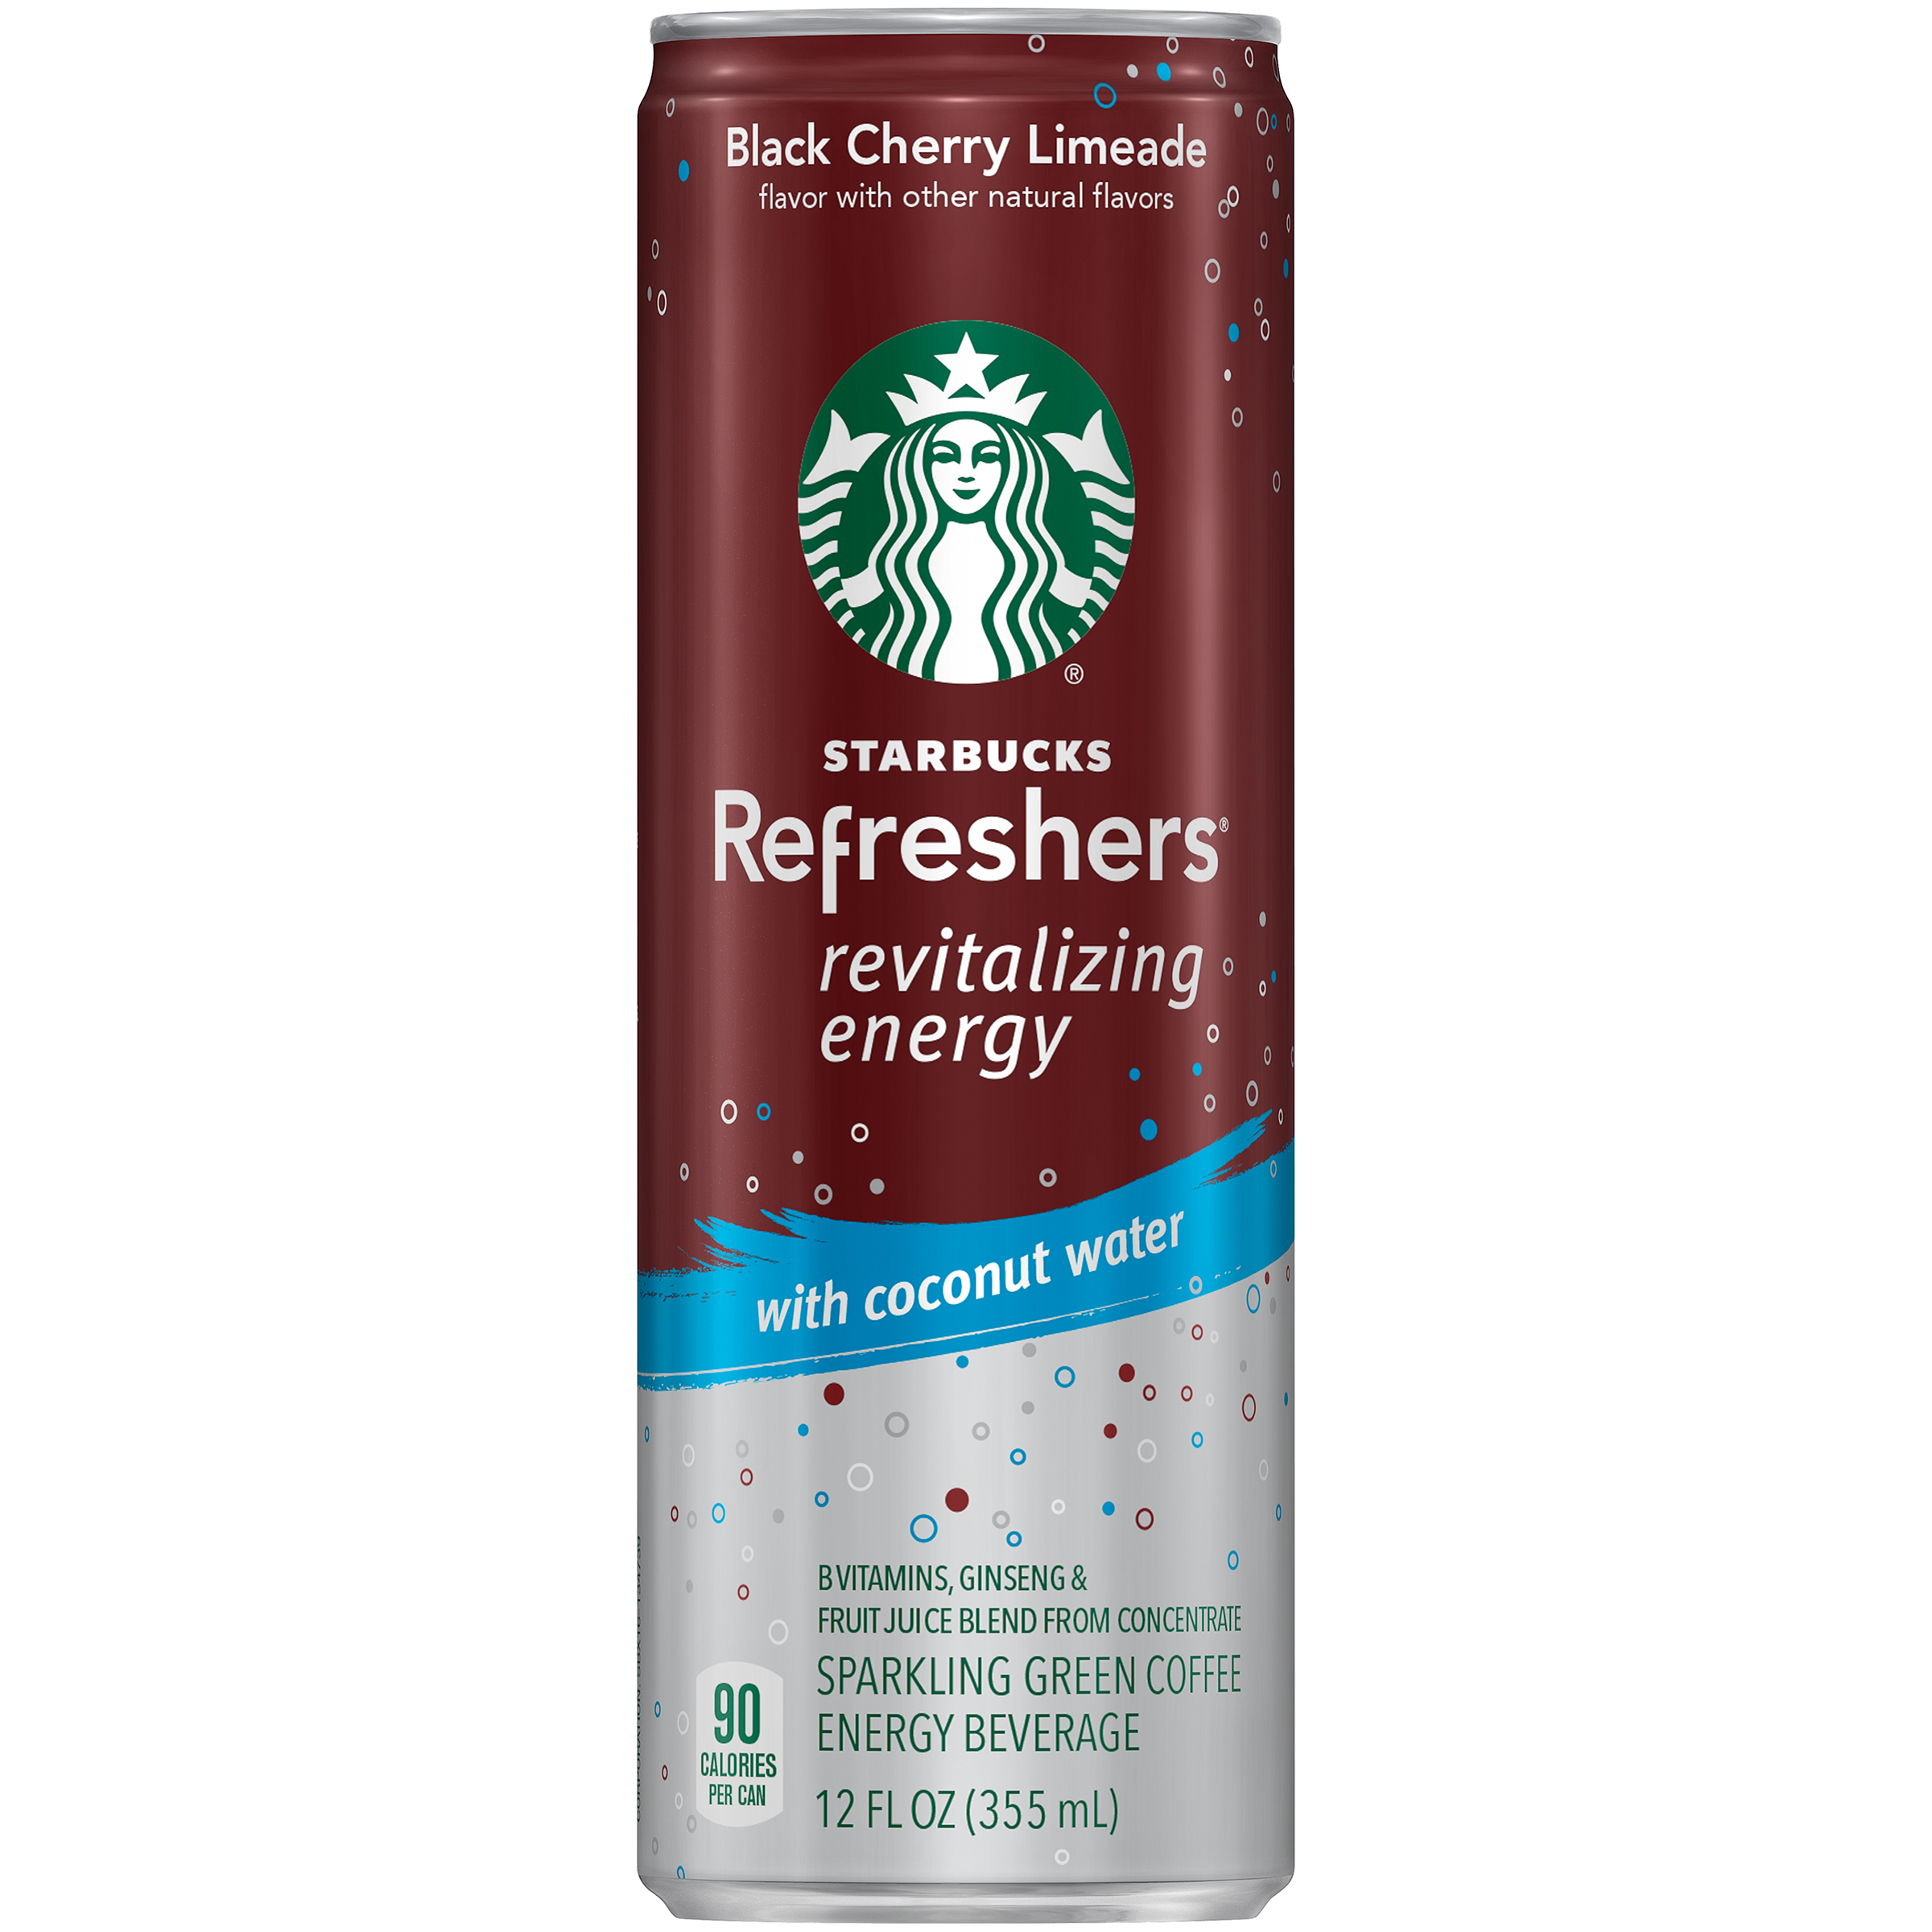 Starbucks Refreshers® Black Cherry Limeade Sparkling Green Coffee Energy Beverage 12 fl. oz. Single Sleek Can